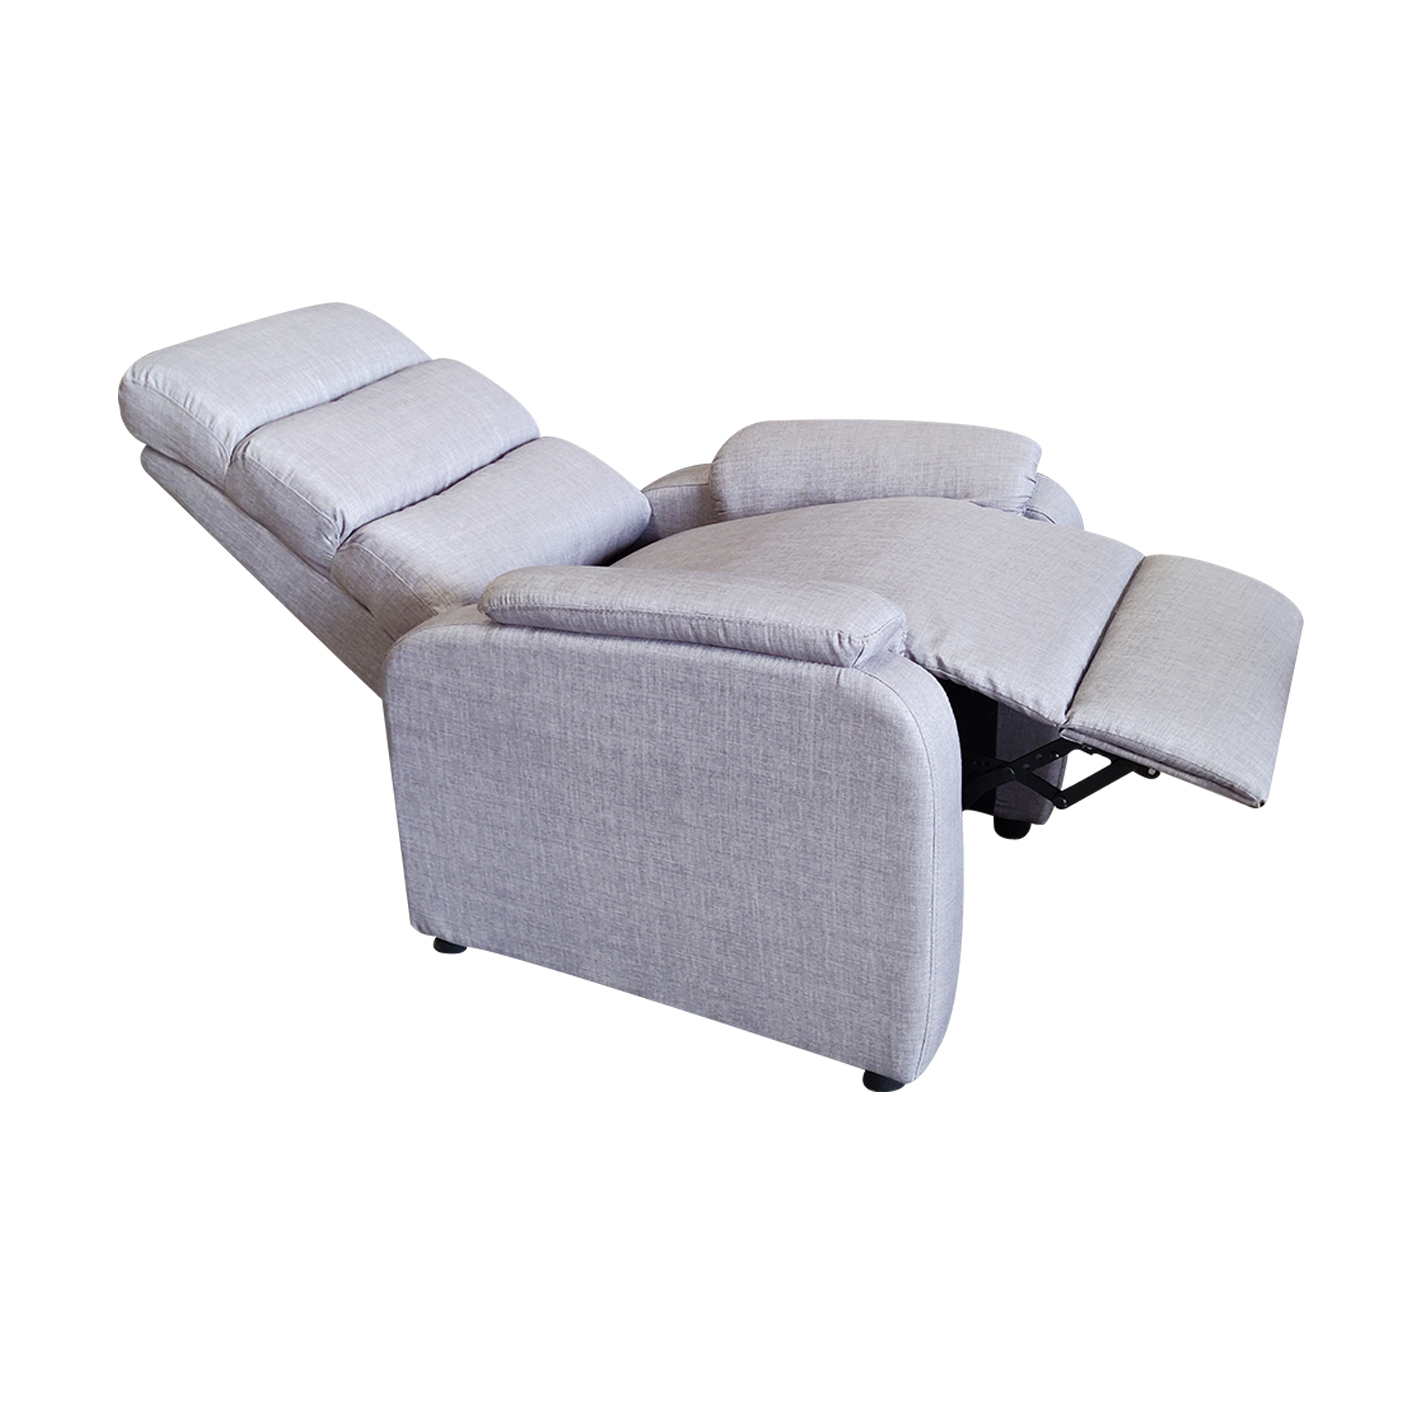 Recliner Chair كرسي راحة واسترخاء